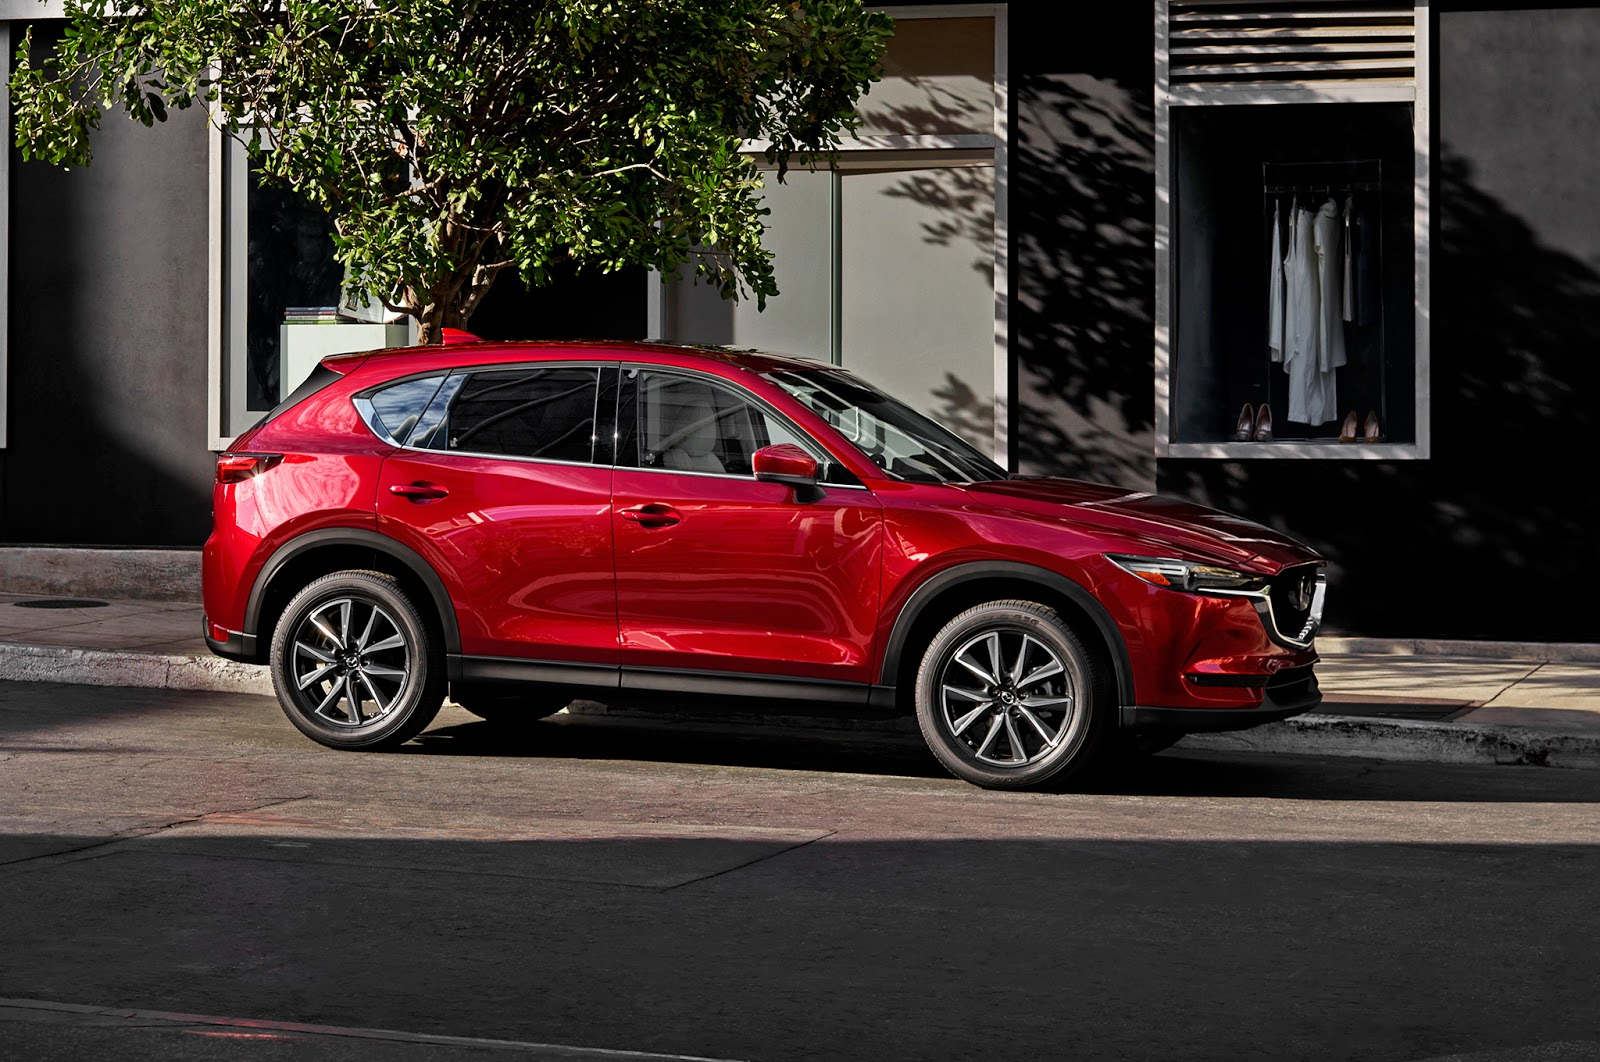 Mazda Cx 5 2017 Interior >> Automotive Assembly Line 2017 Mazda Cx 5 Interior Review